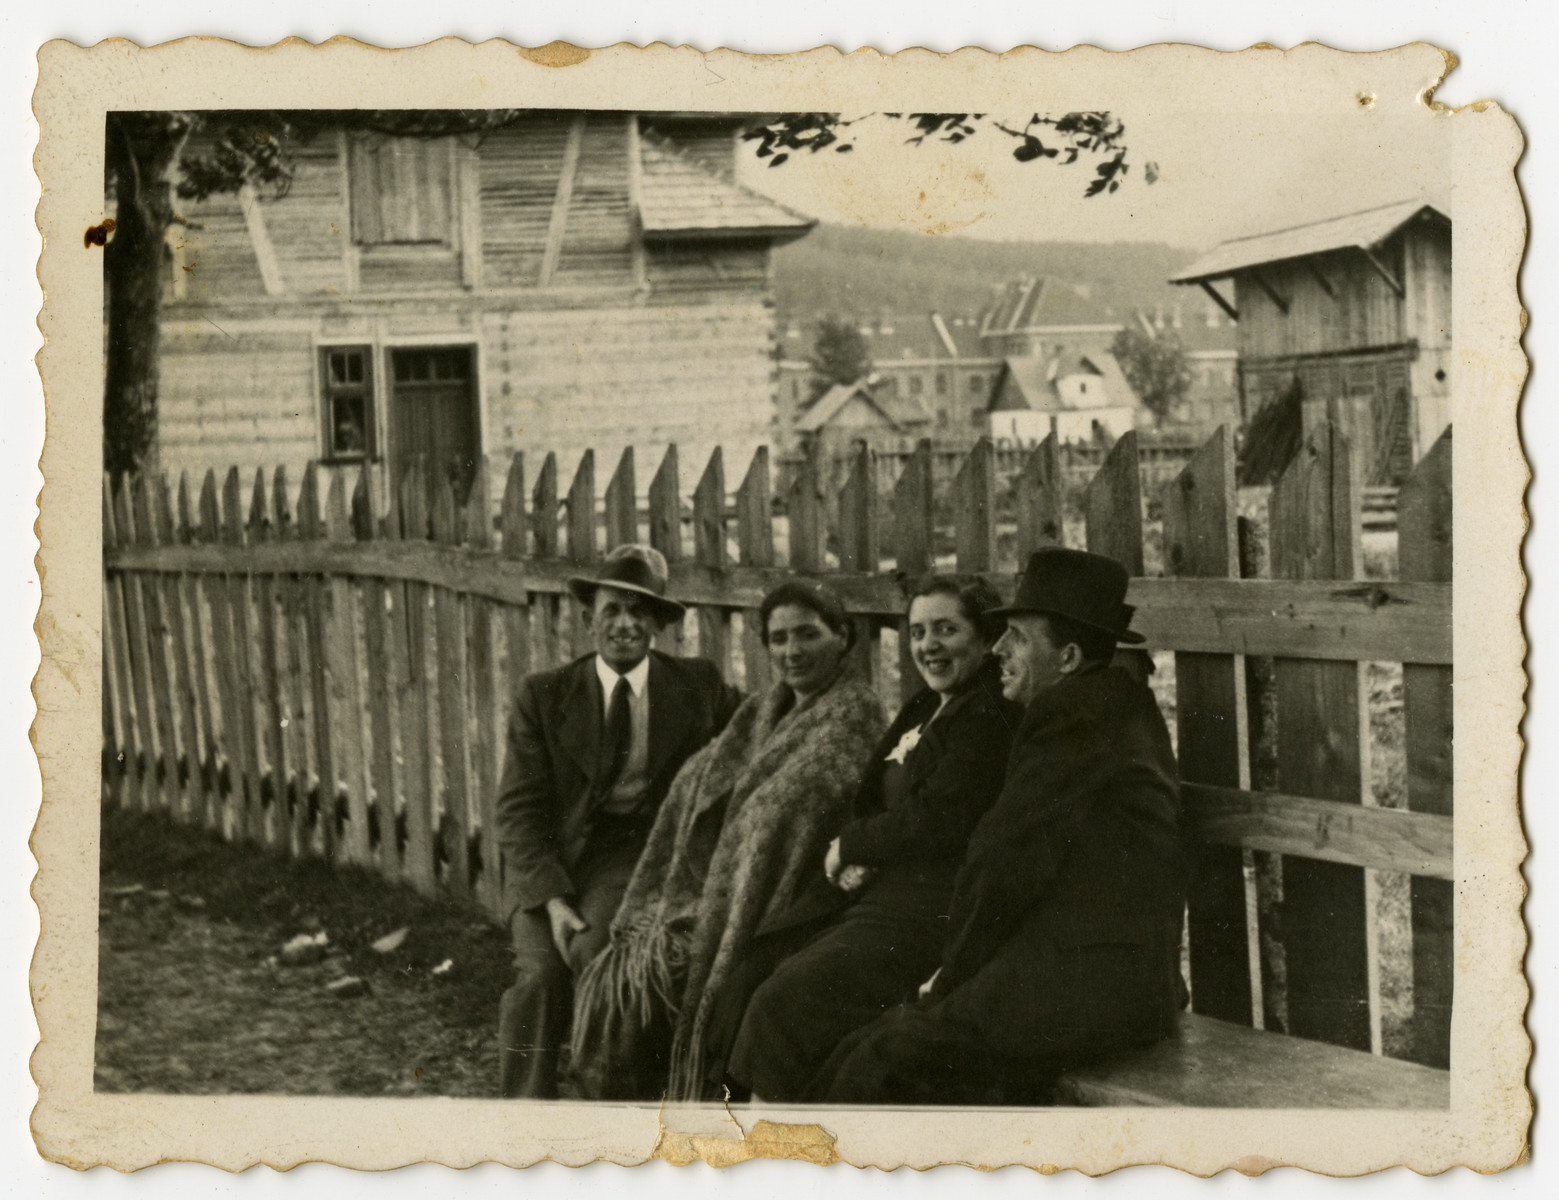 [Family and/or friends of Izak Weber sit on an outdoor bench, probably in Skole, Poland.]